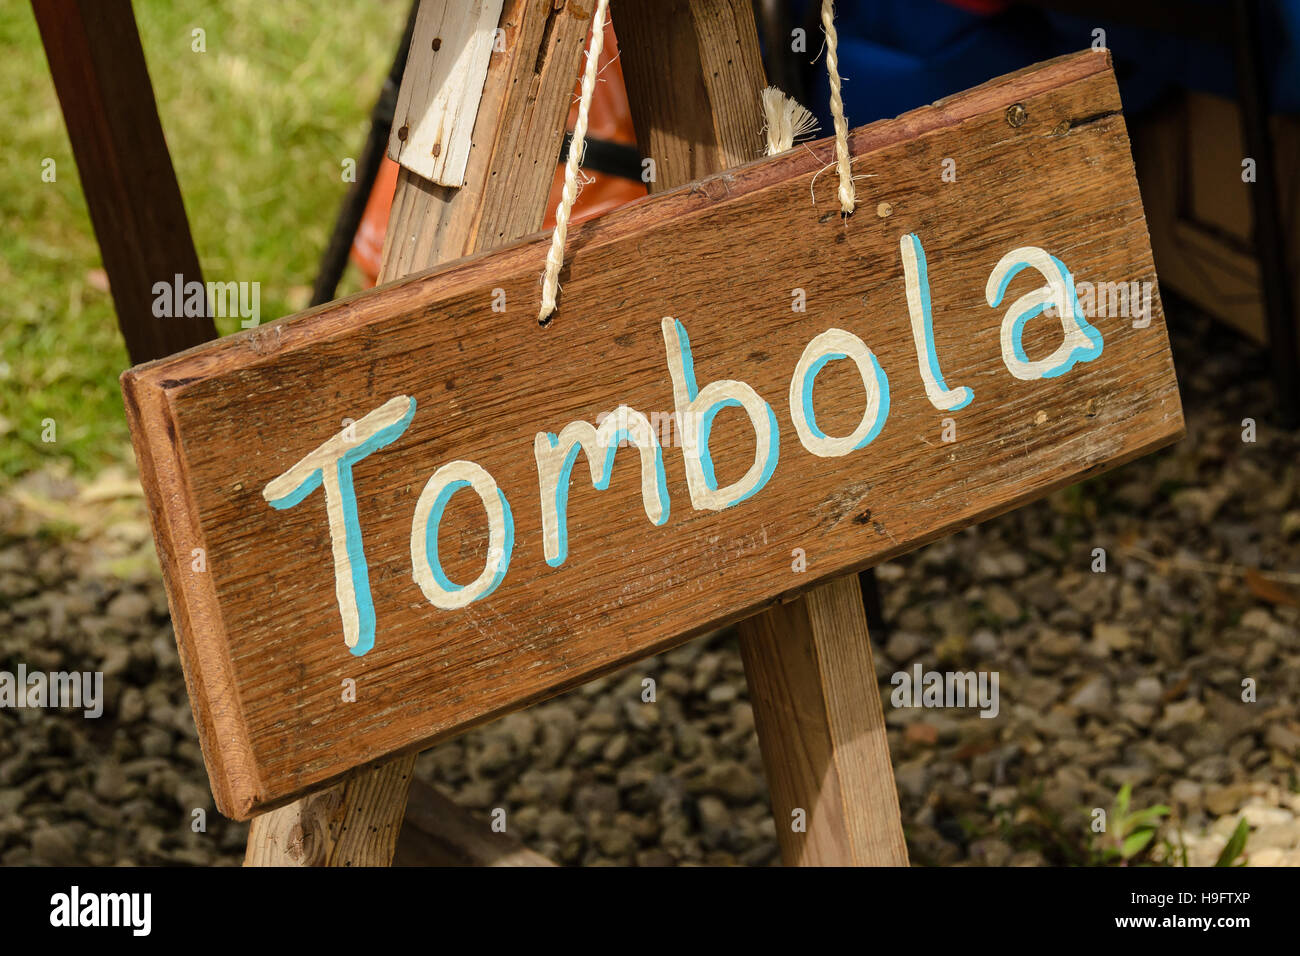 Tombola Stall Stock Photos & Tombola Stall Stock Images ...  Tombola Stall S...